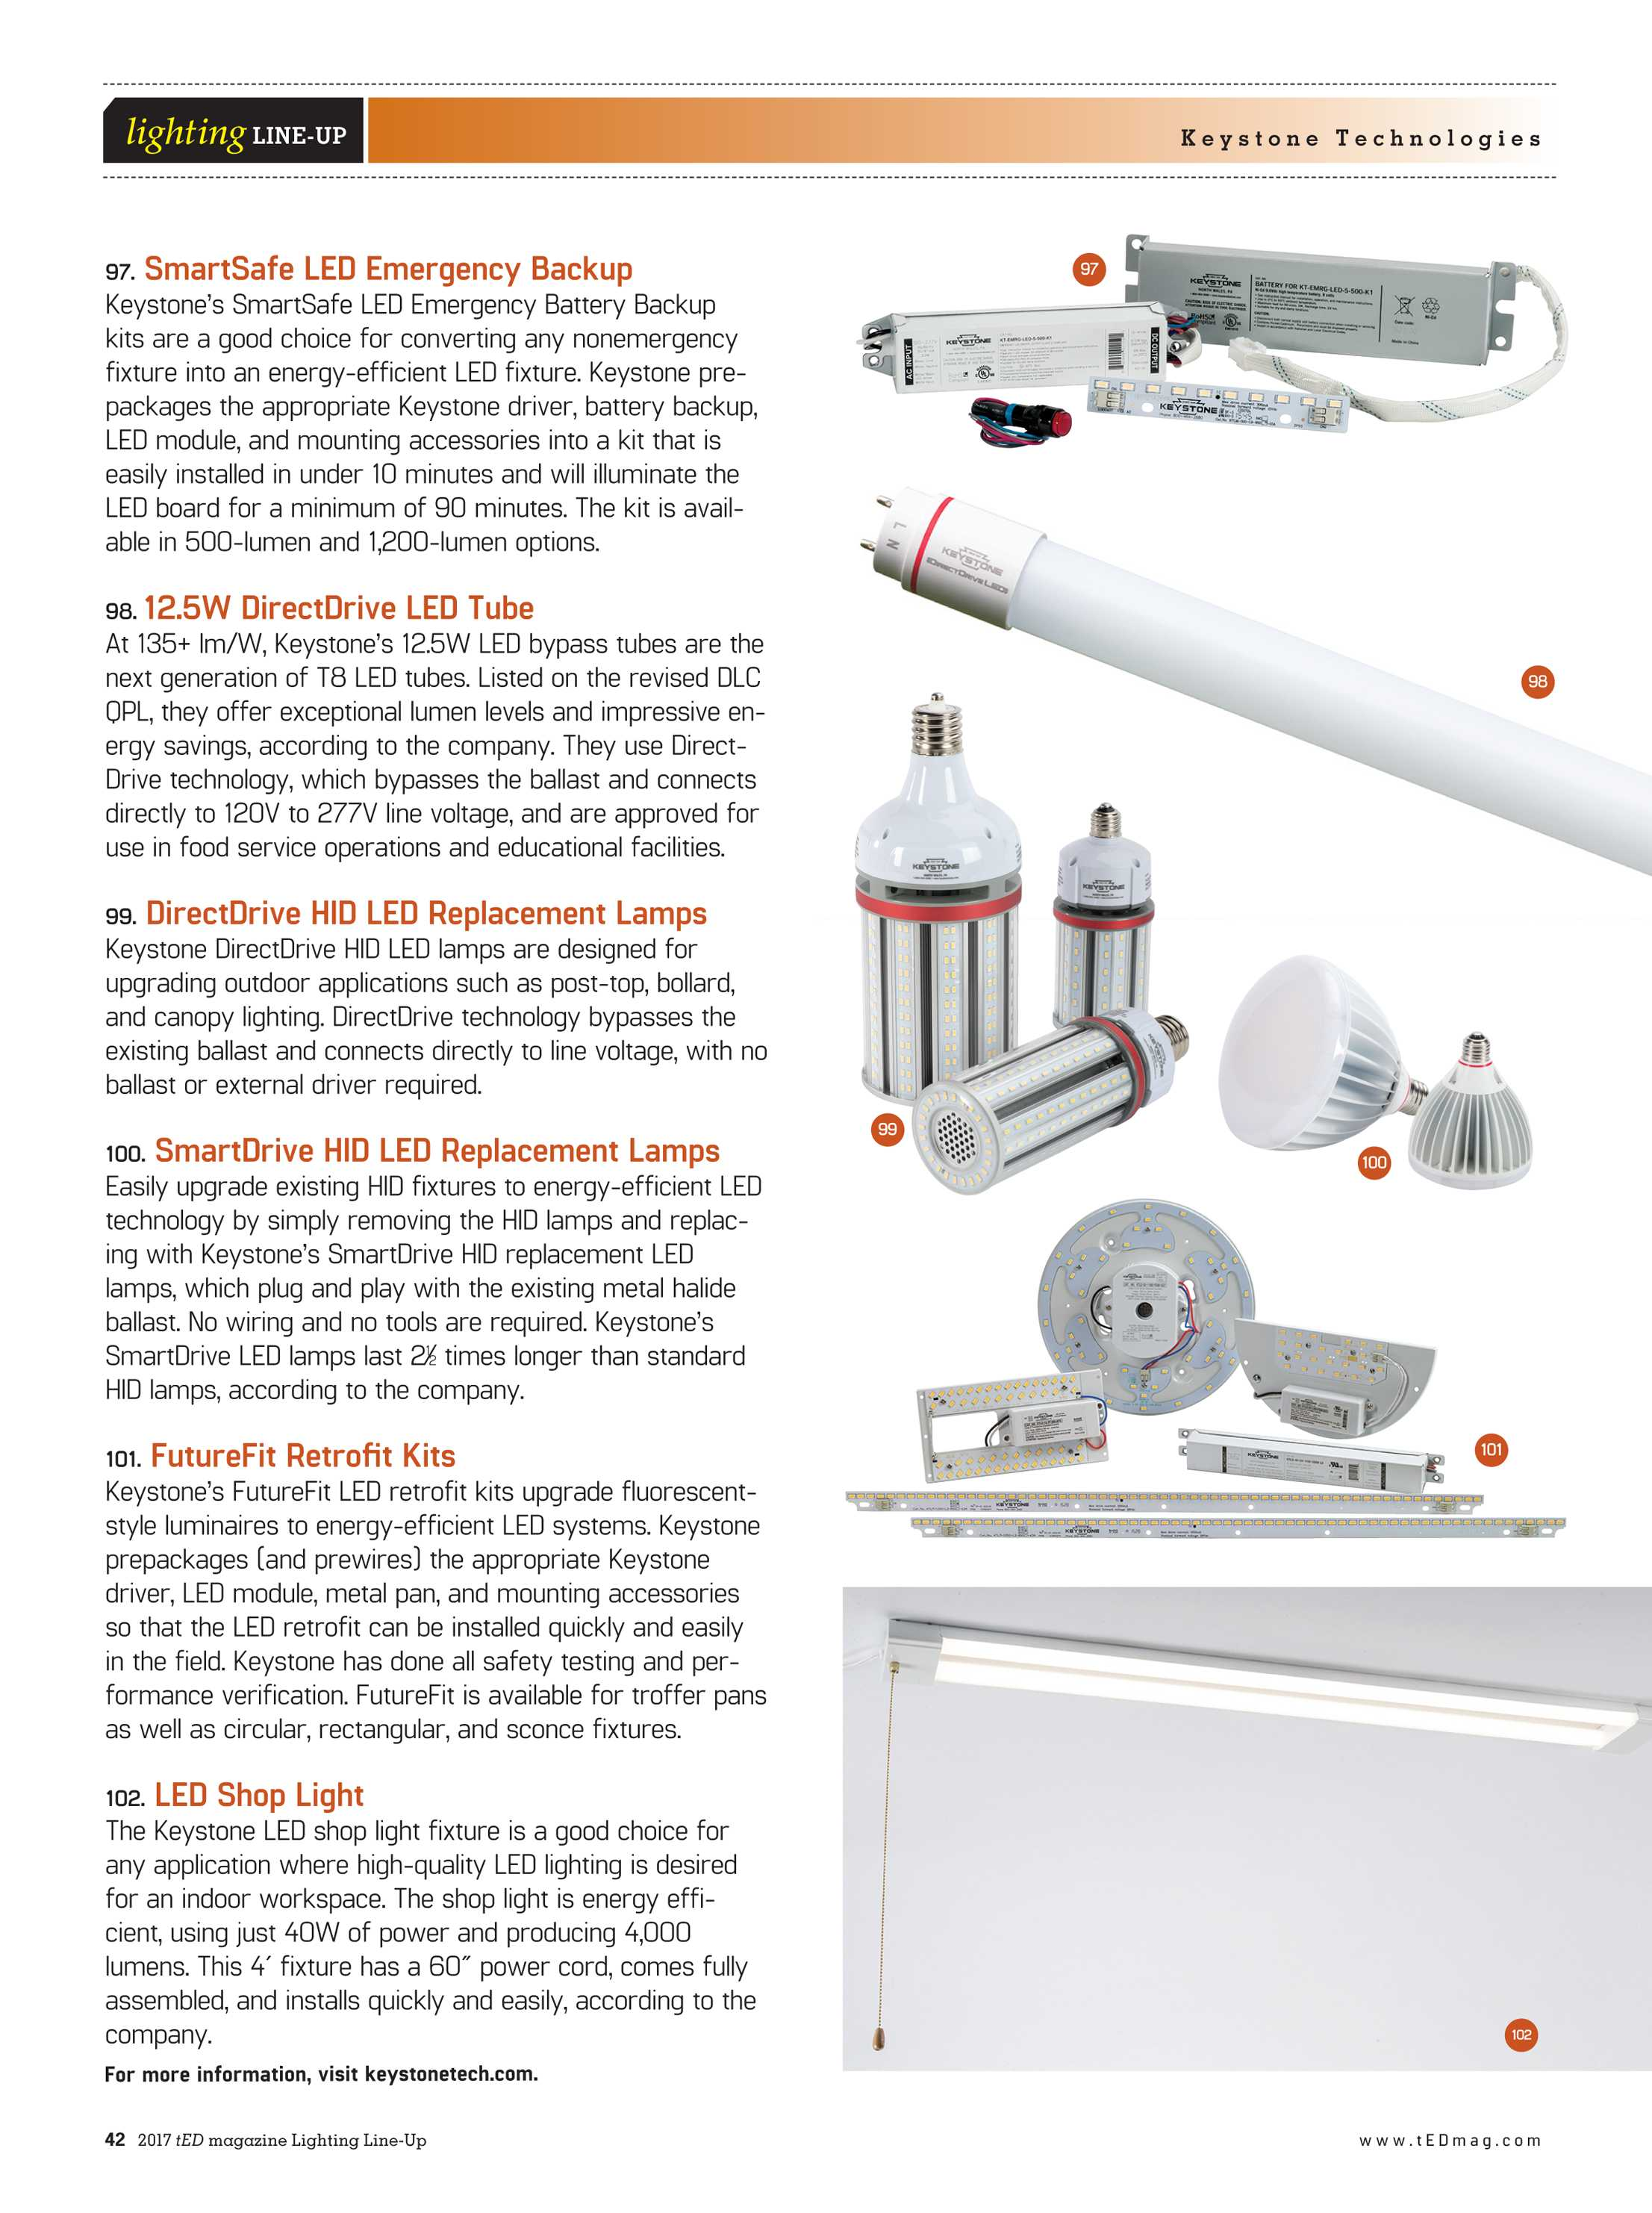 Ted Magazine Lighting Line Up 2017 Page 42